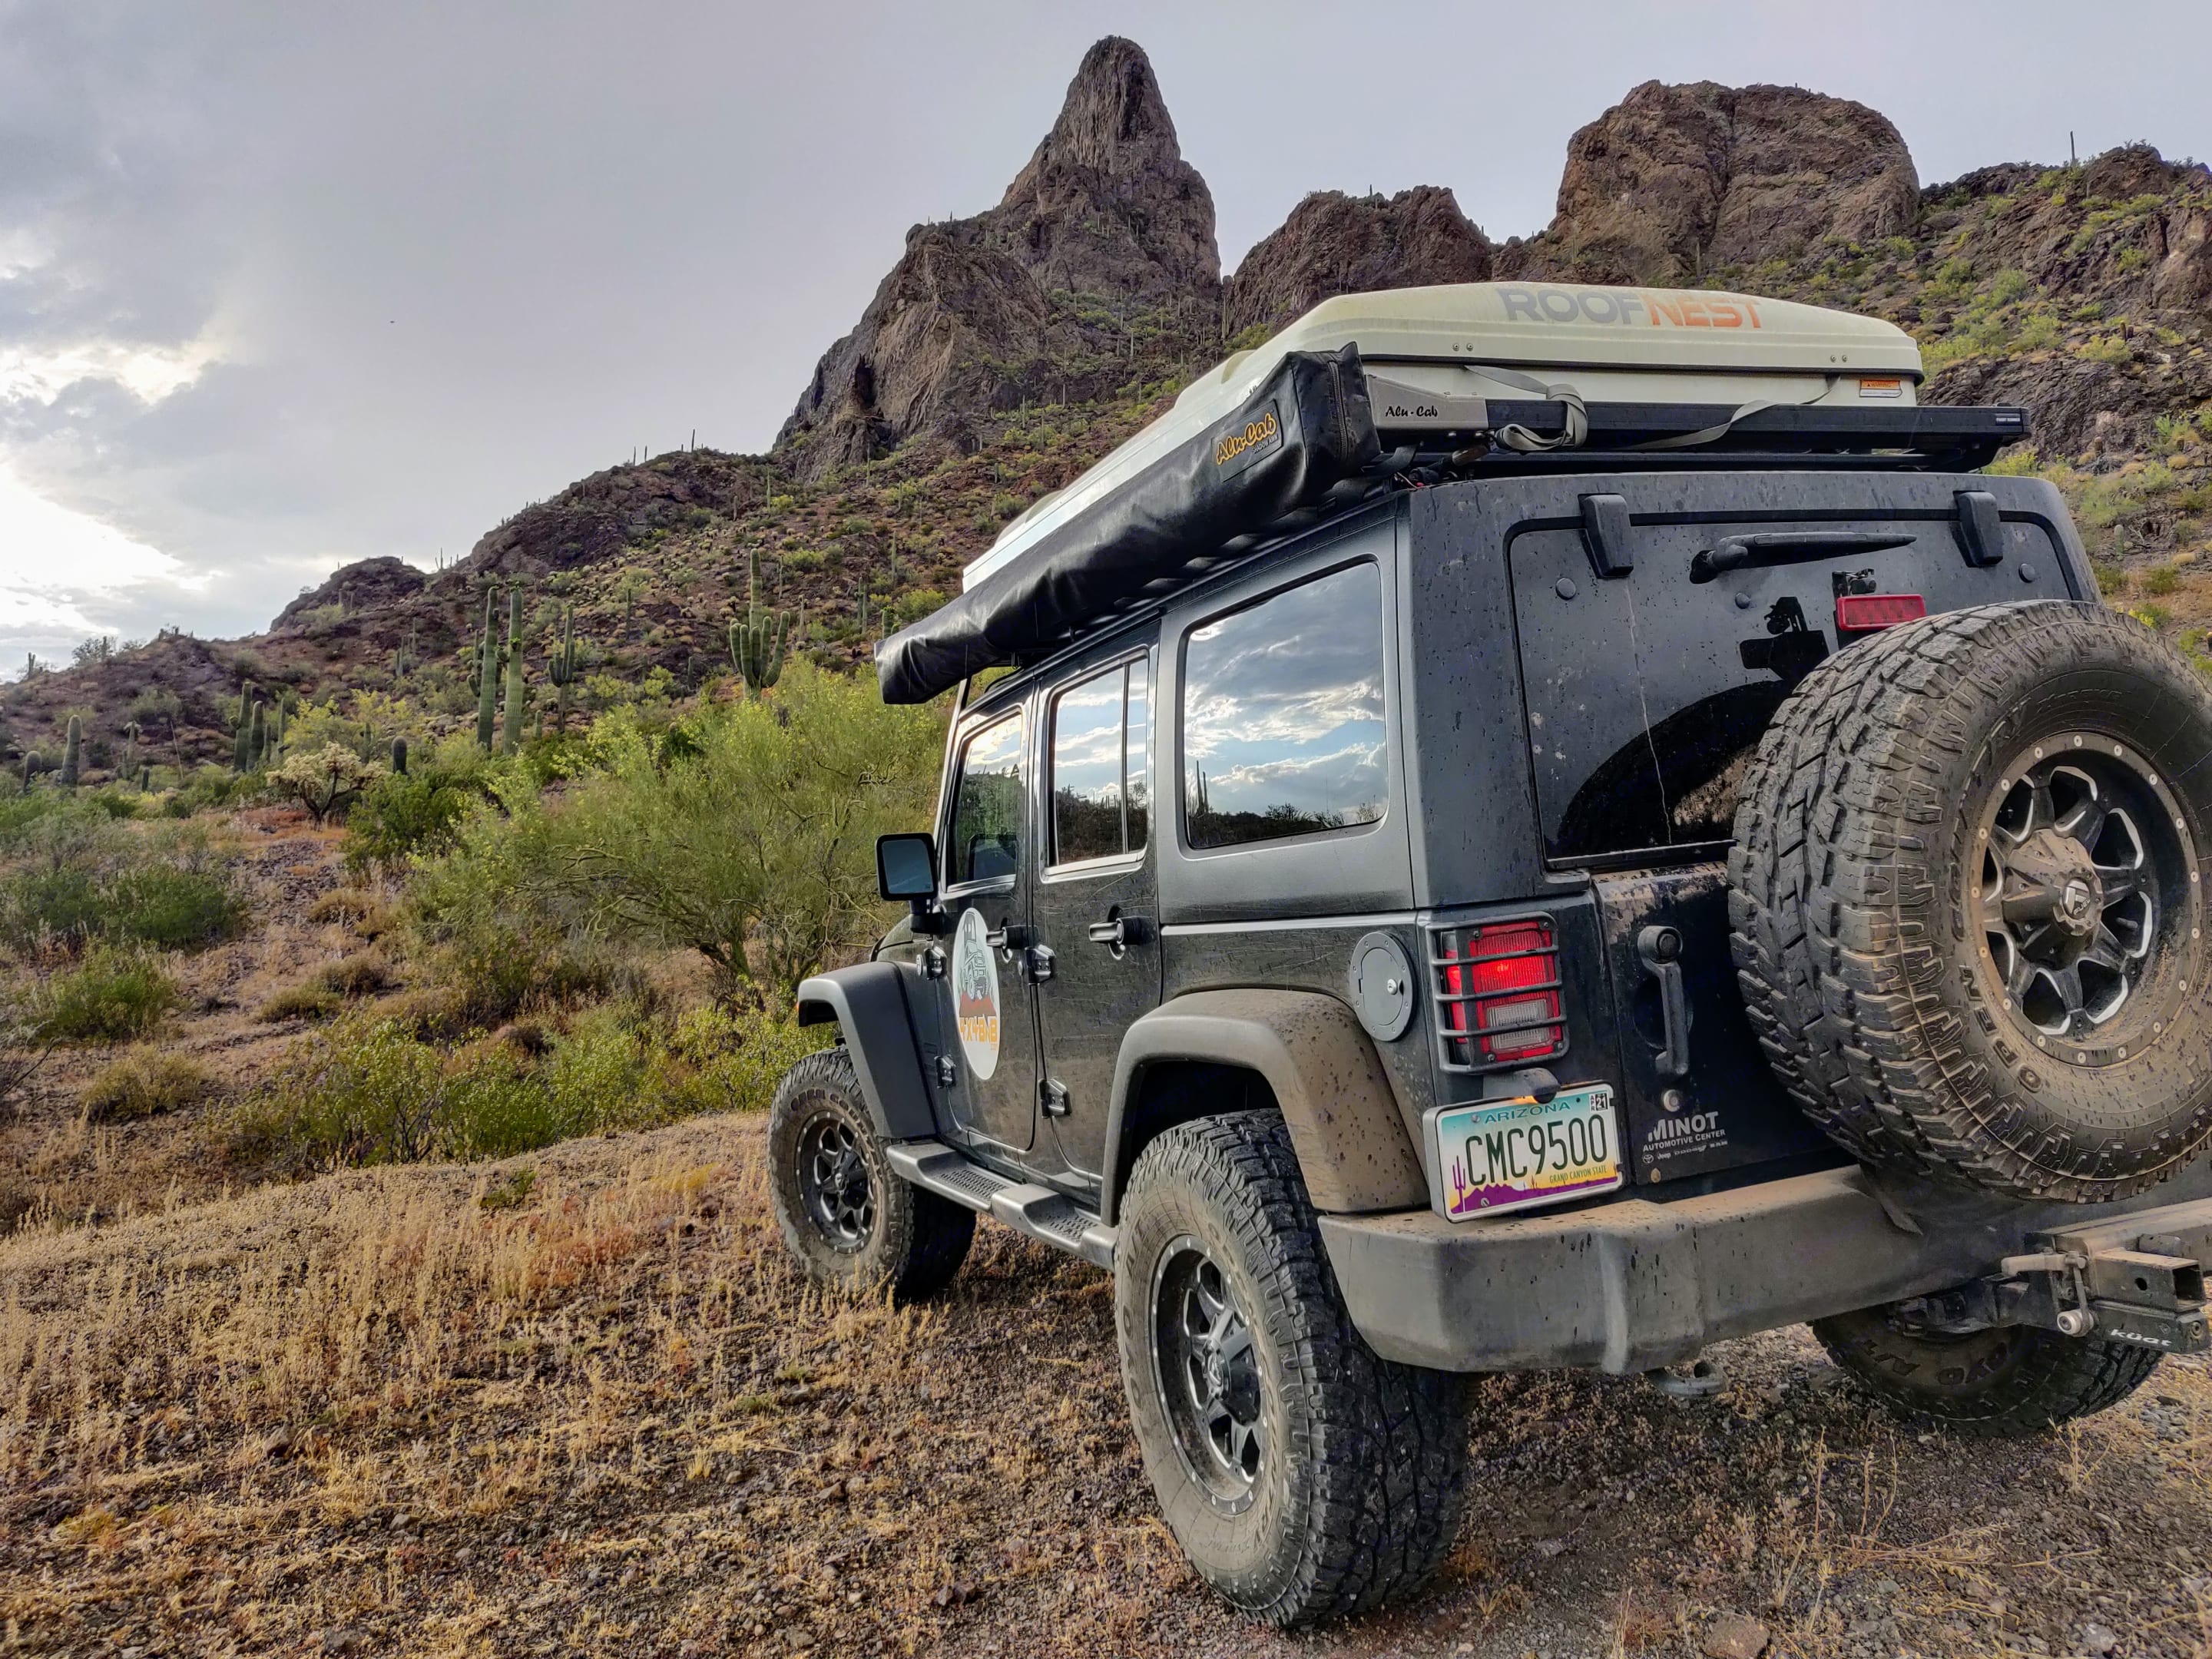 Take your Bed and Breakfast anywhere!. Jeep Wrangler Unlimited 2016